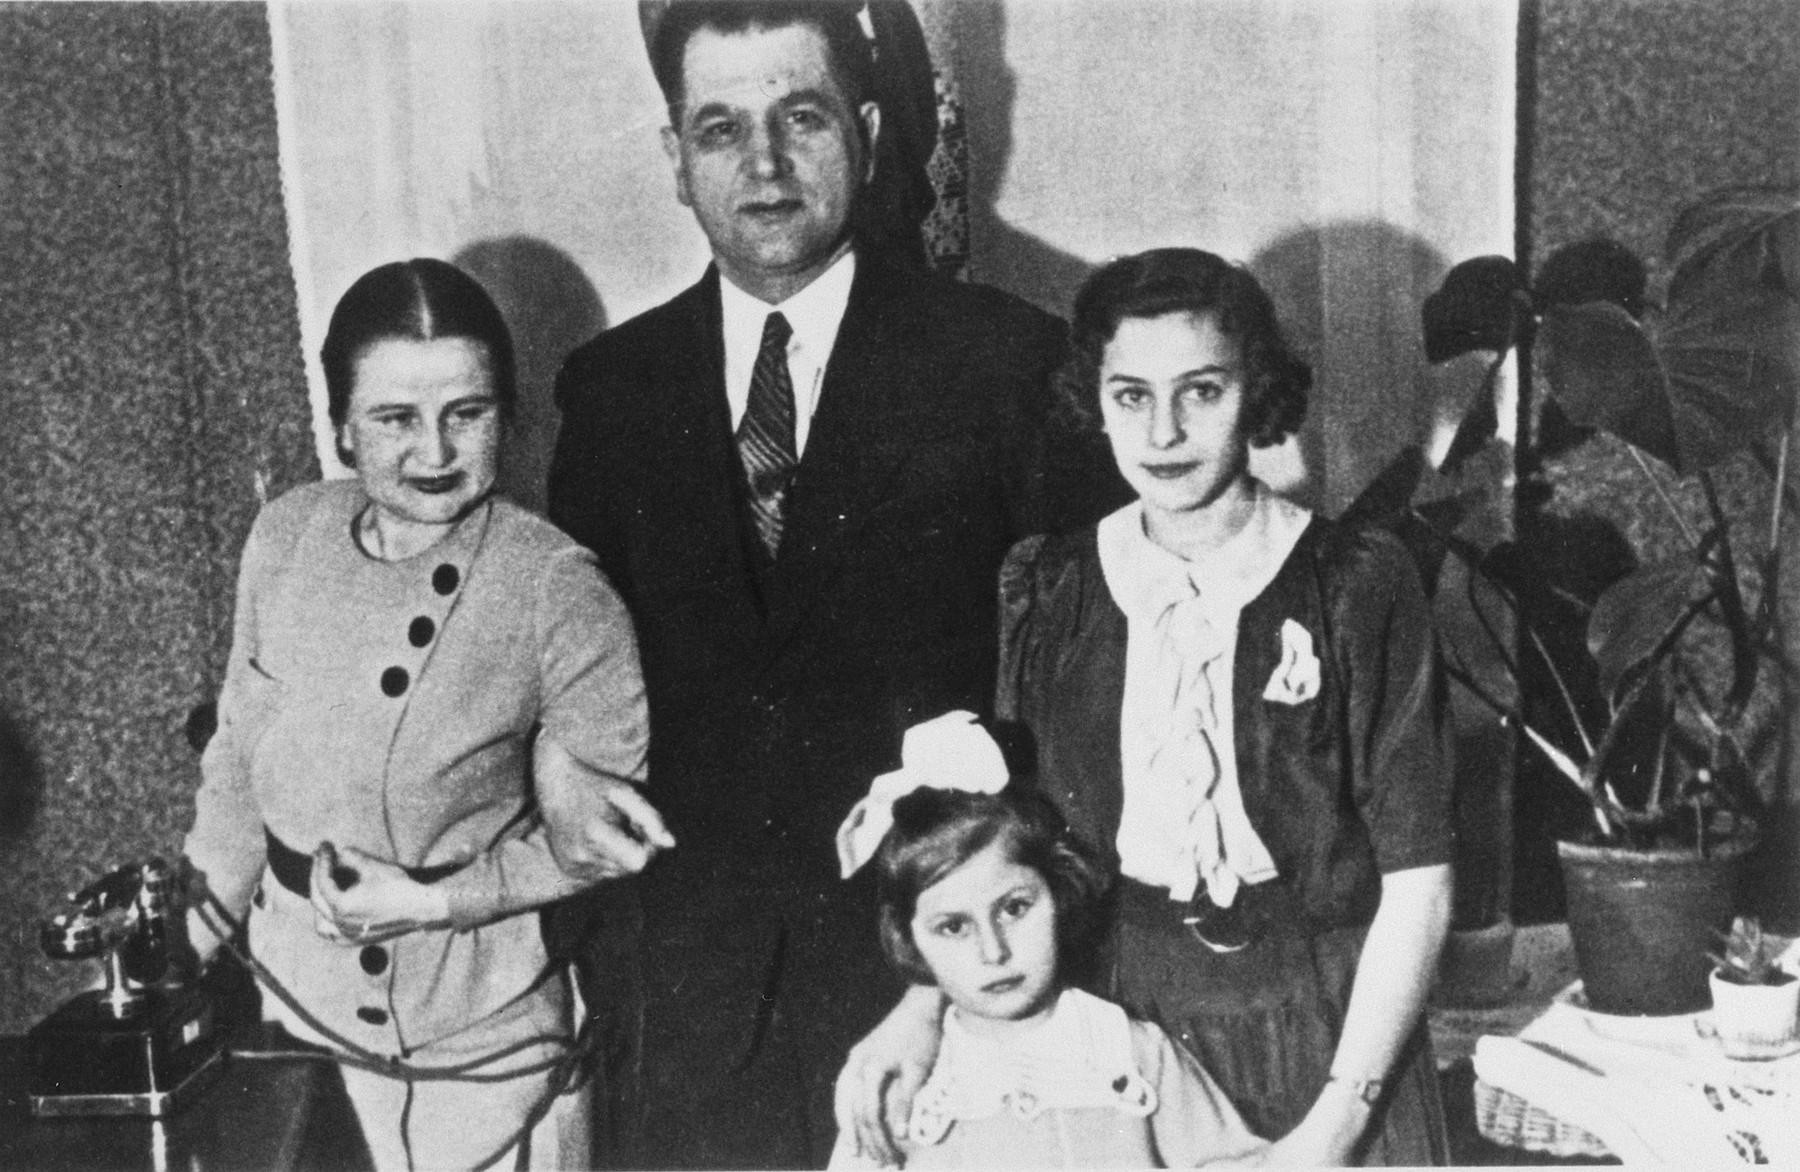 Portrait of a Polish Jewish family.    Pictured are Estusia Wajcblum (far right), her cousin's daughter Yanka (front), Yanka's governess (left), and an unknown man.